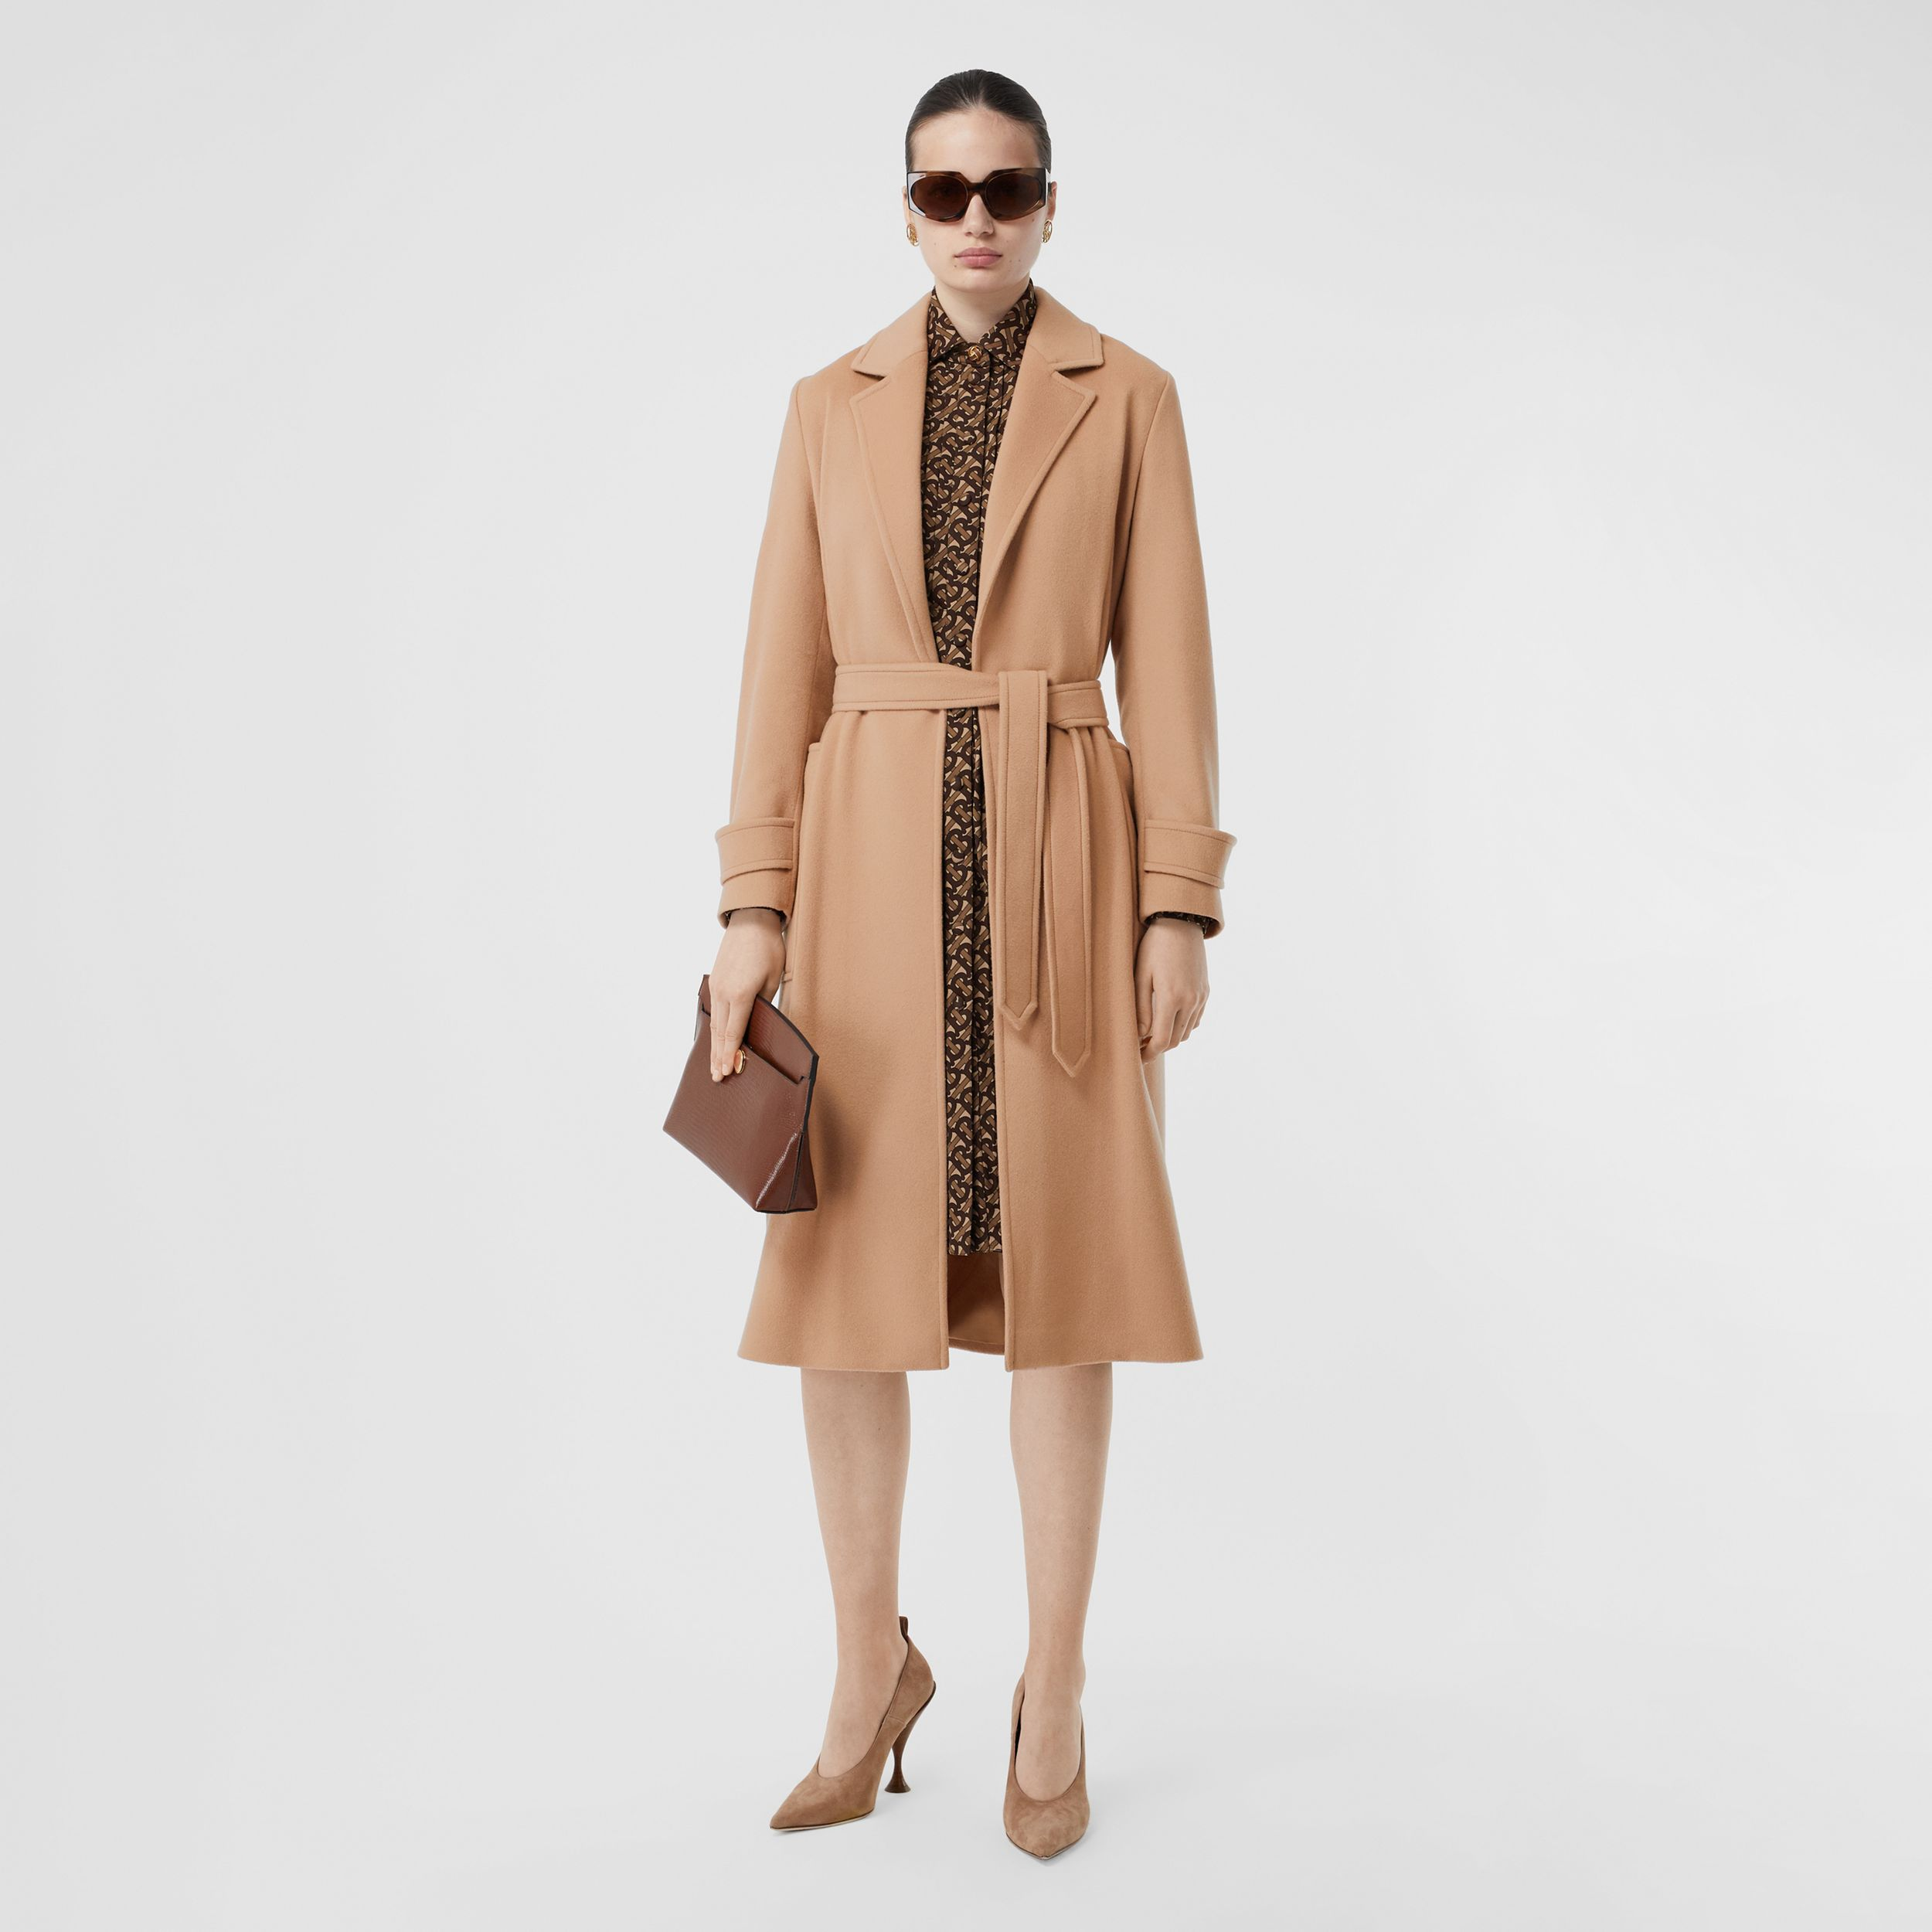 Cashmere Wrap Coat in Modern Beige - Women | Burberry - 1